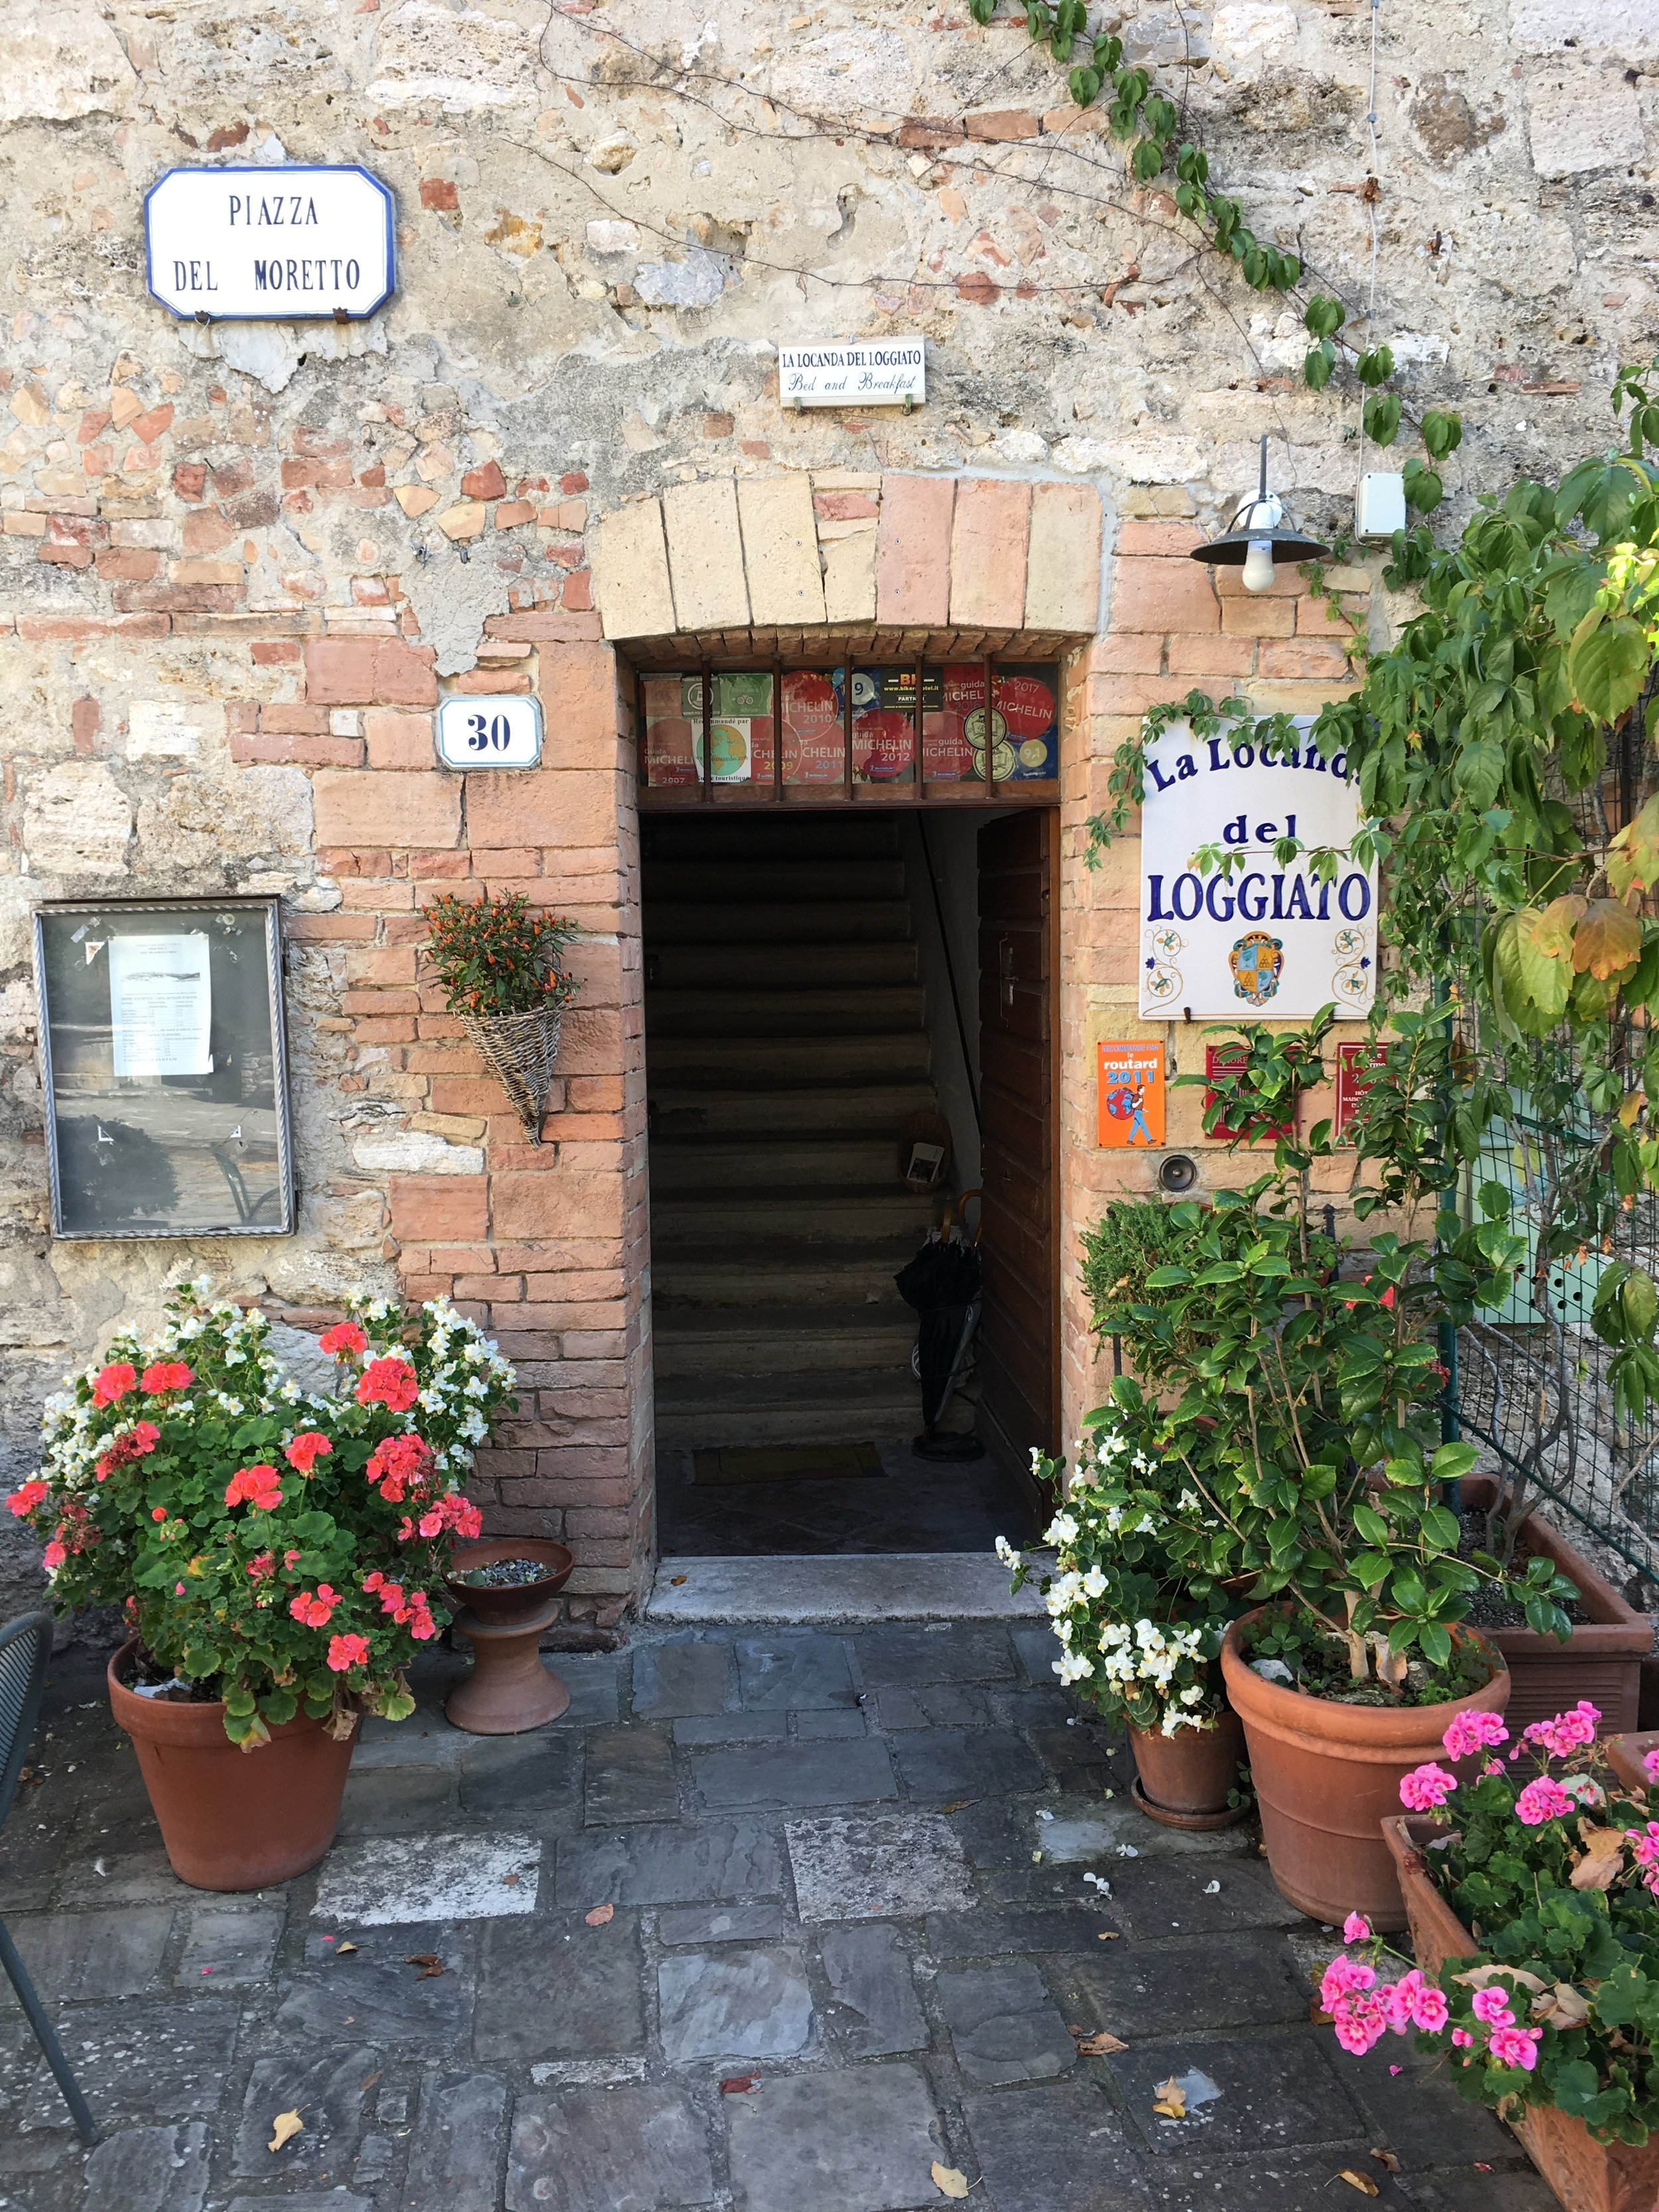 Bagno Vignoni- Our hotel was a pleasant surprise - great location and decor in this tiny hamlet